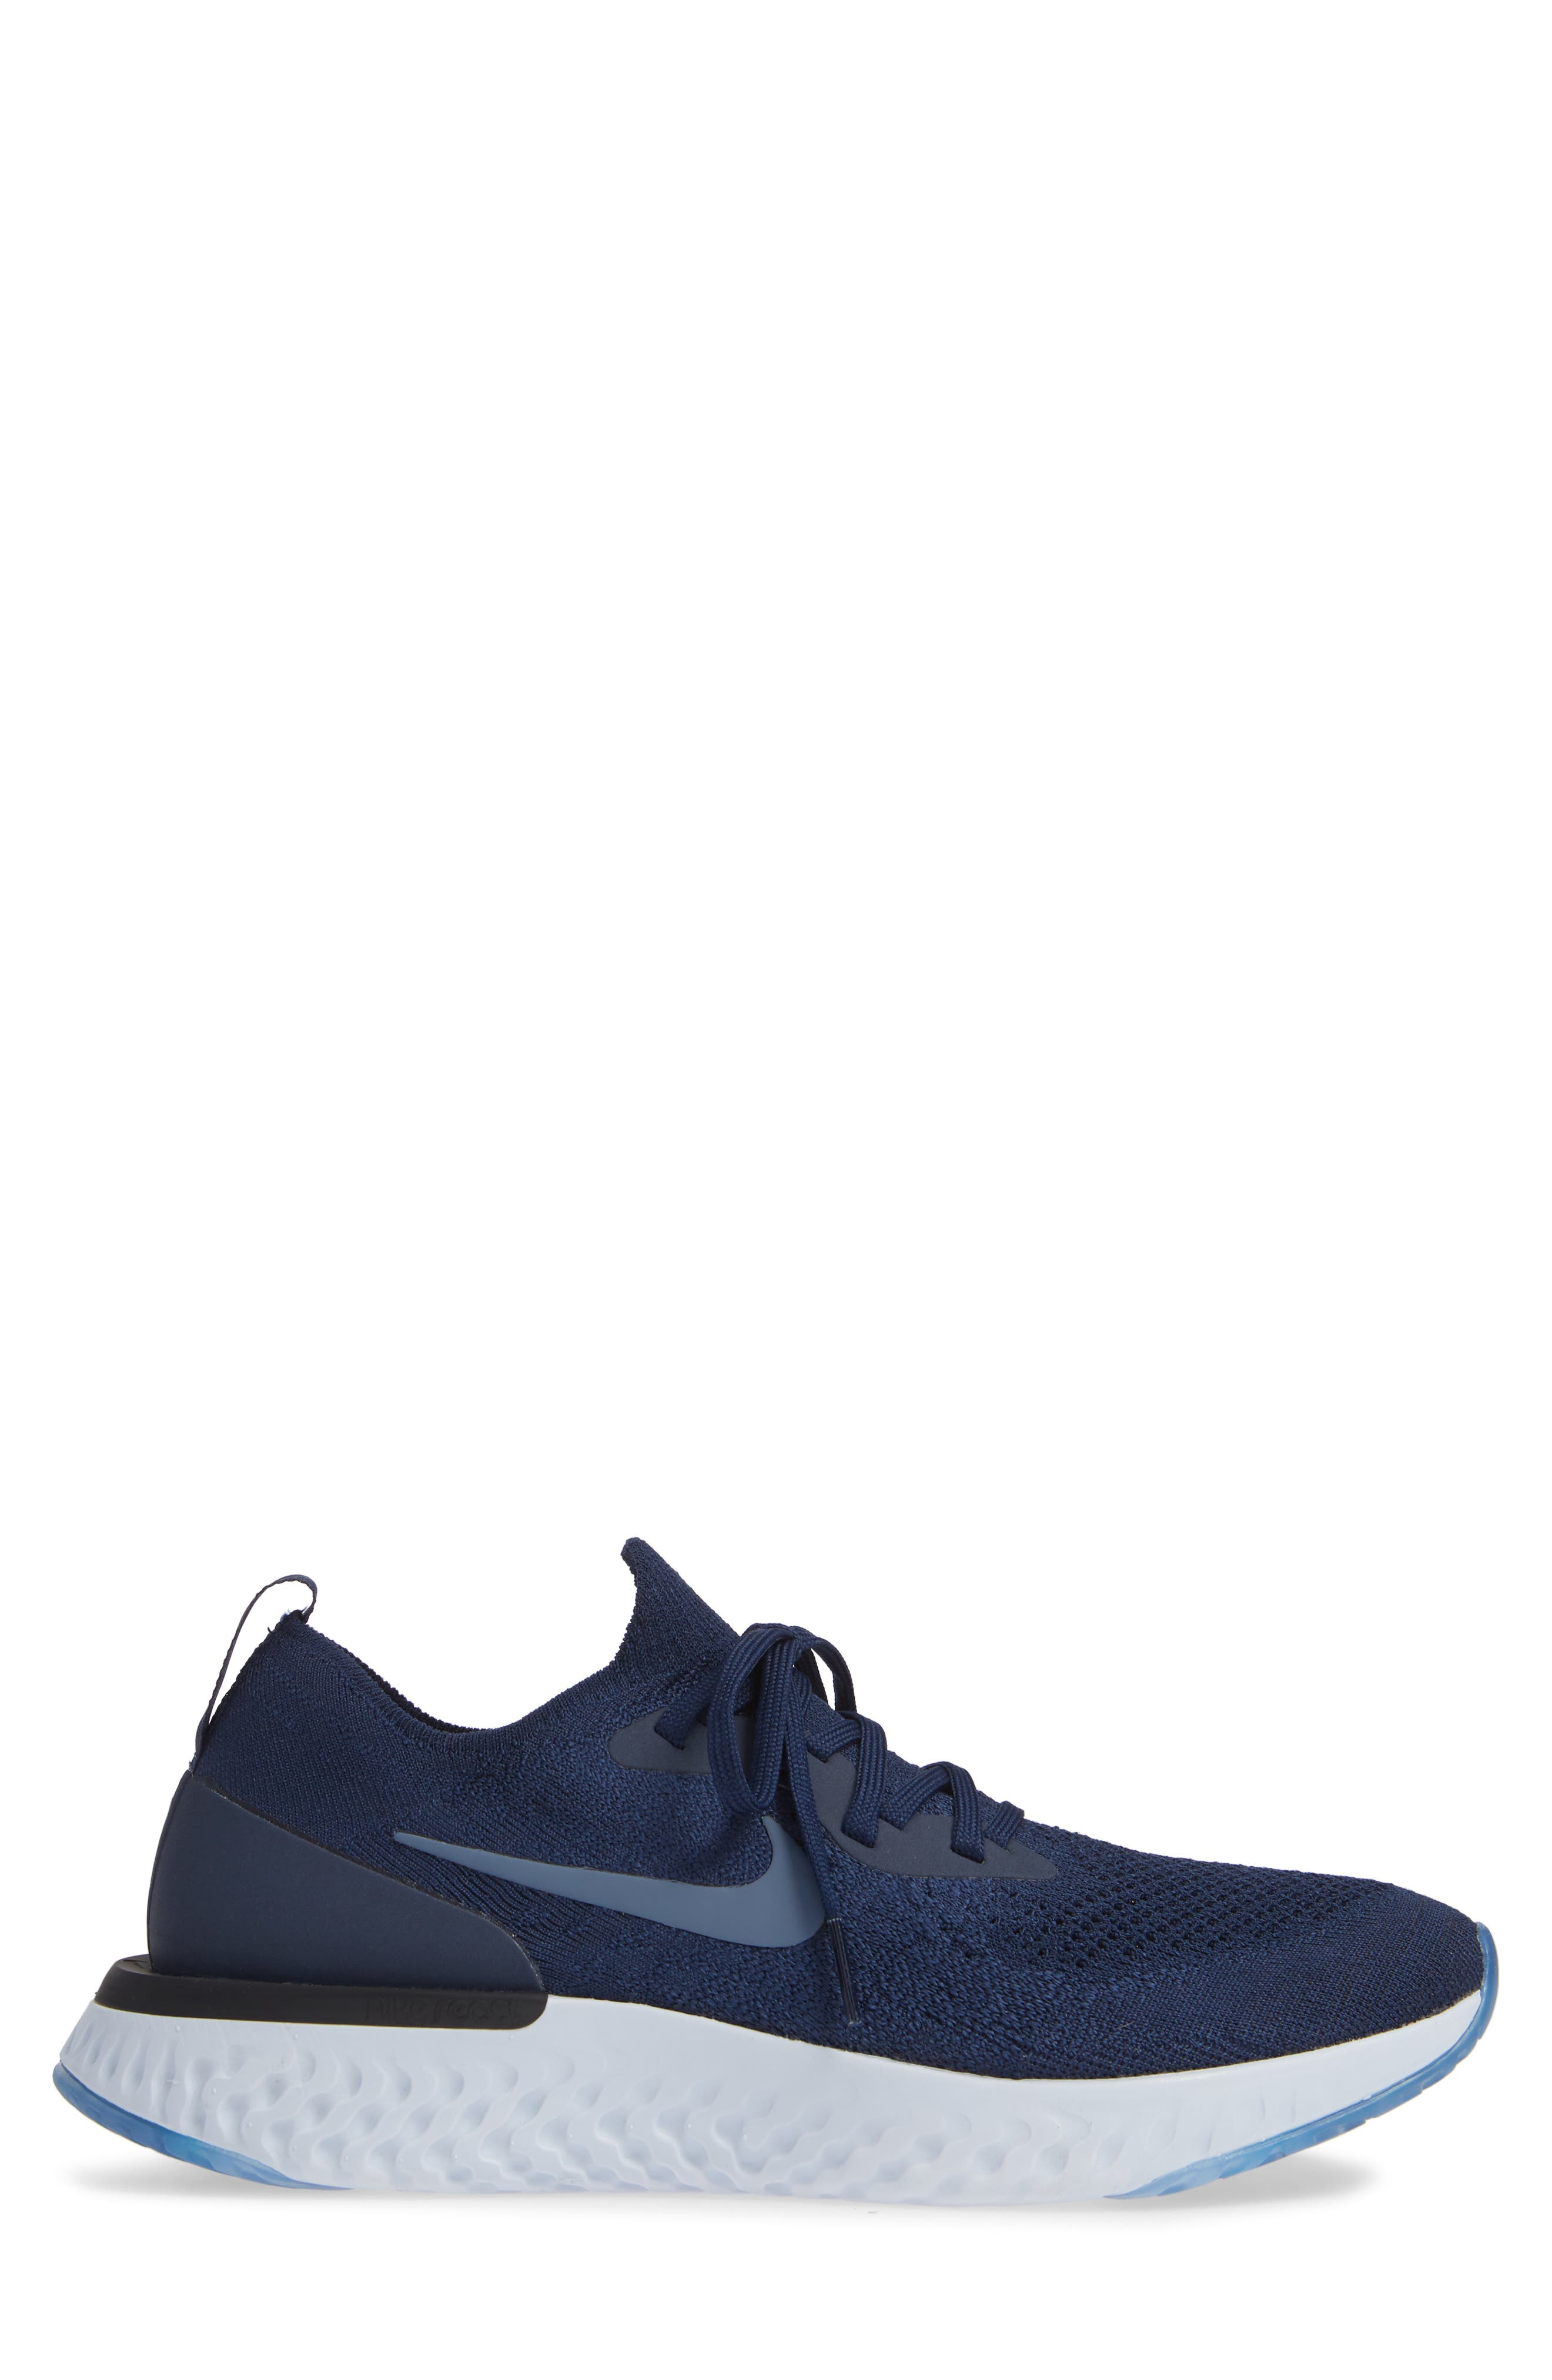 Epic React Flyknit Running Shoe,                             Alternate thumbnail 3, color,                             COLLEGE NAVY/ BLUE/ GREY